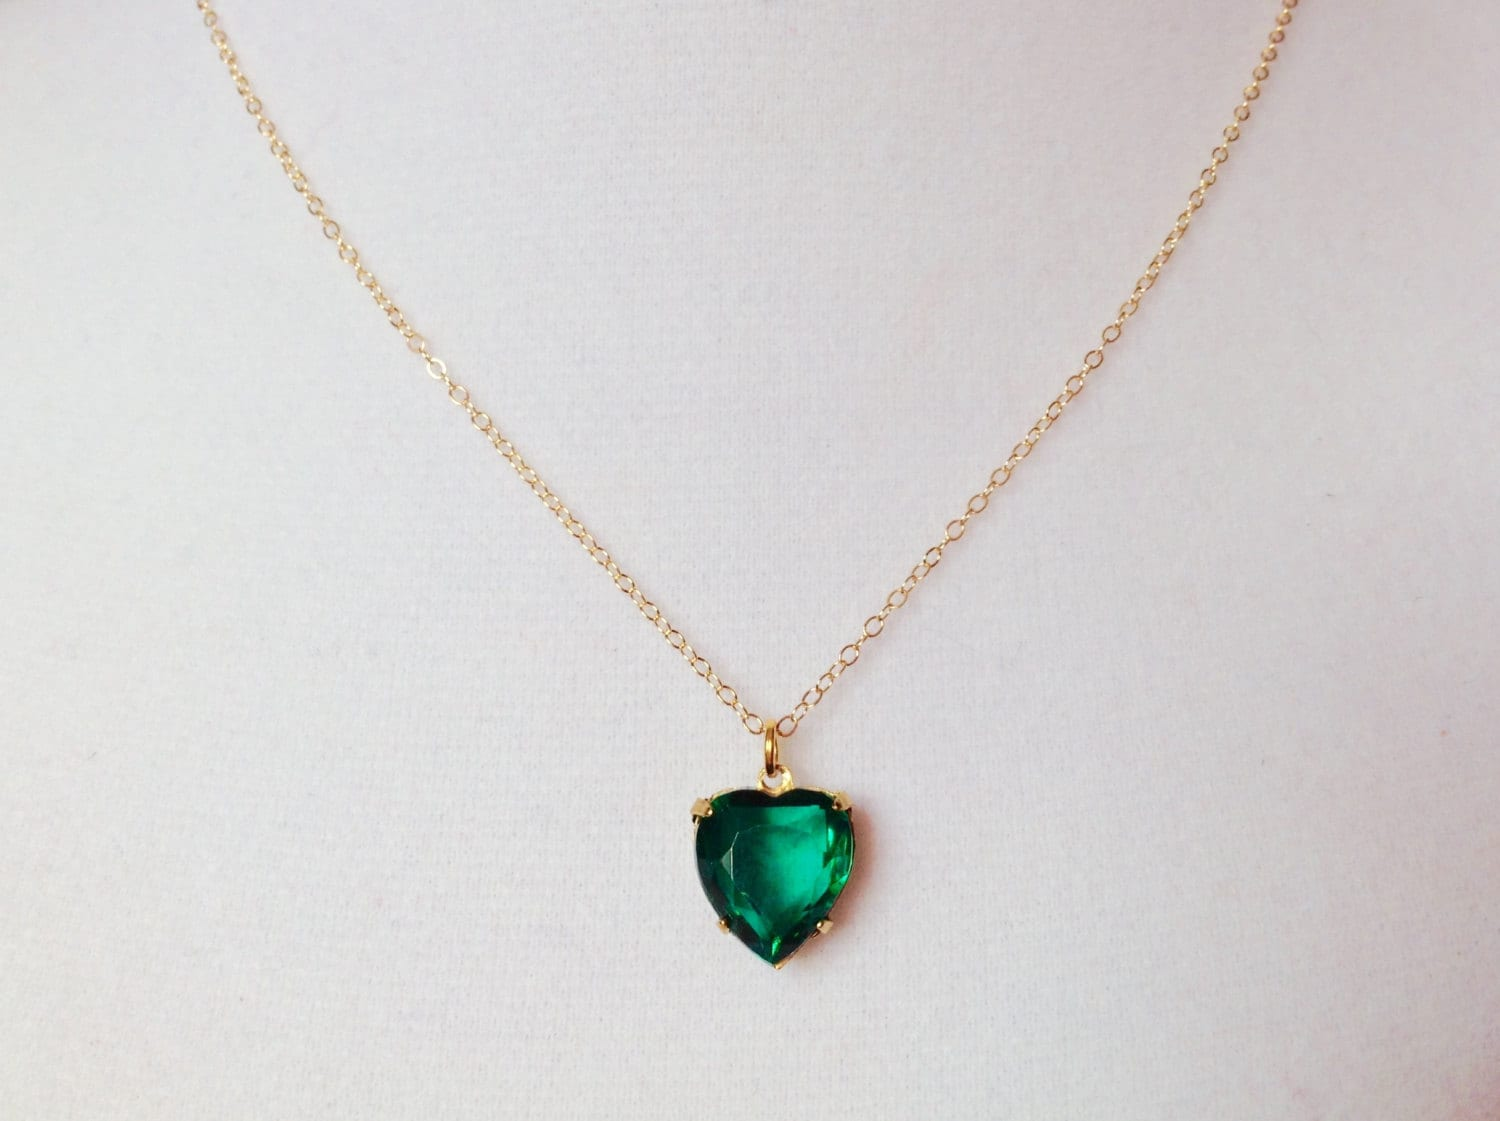 Emerald necklace emerald heart necklace beautiful jewelry zoom aloadofball Images